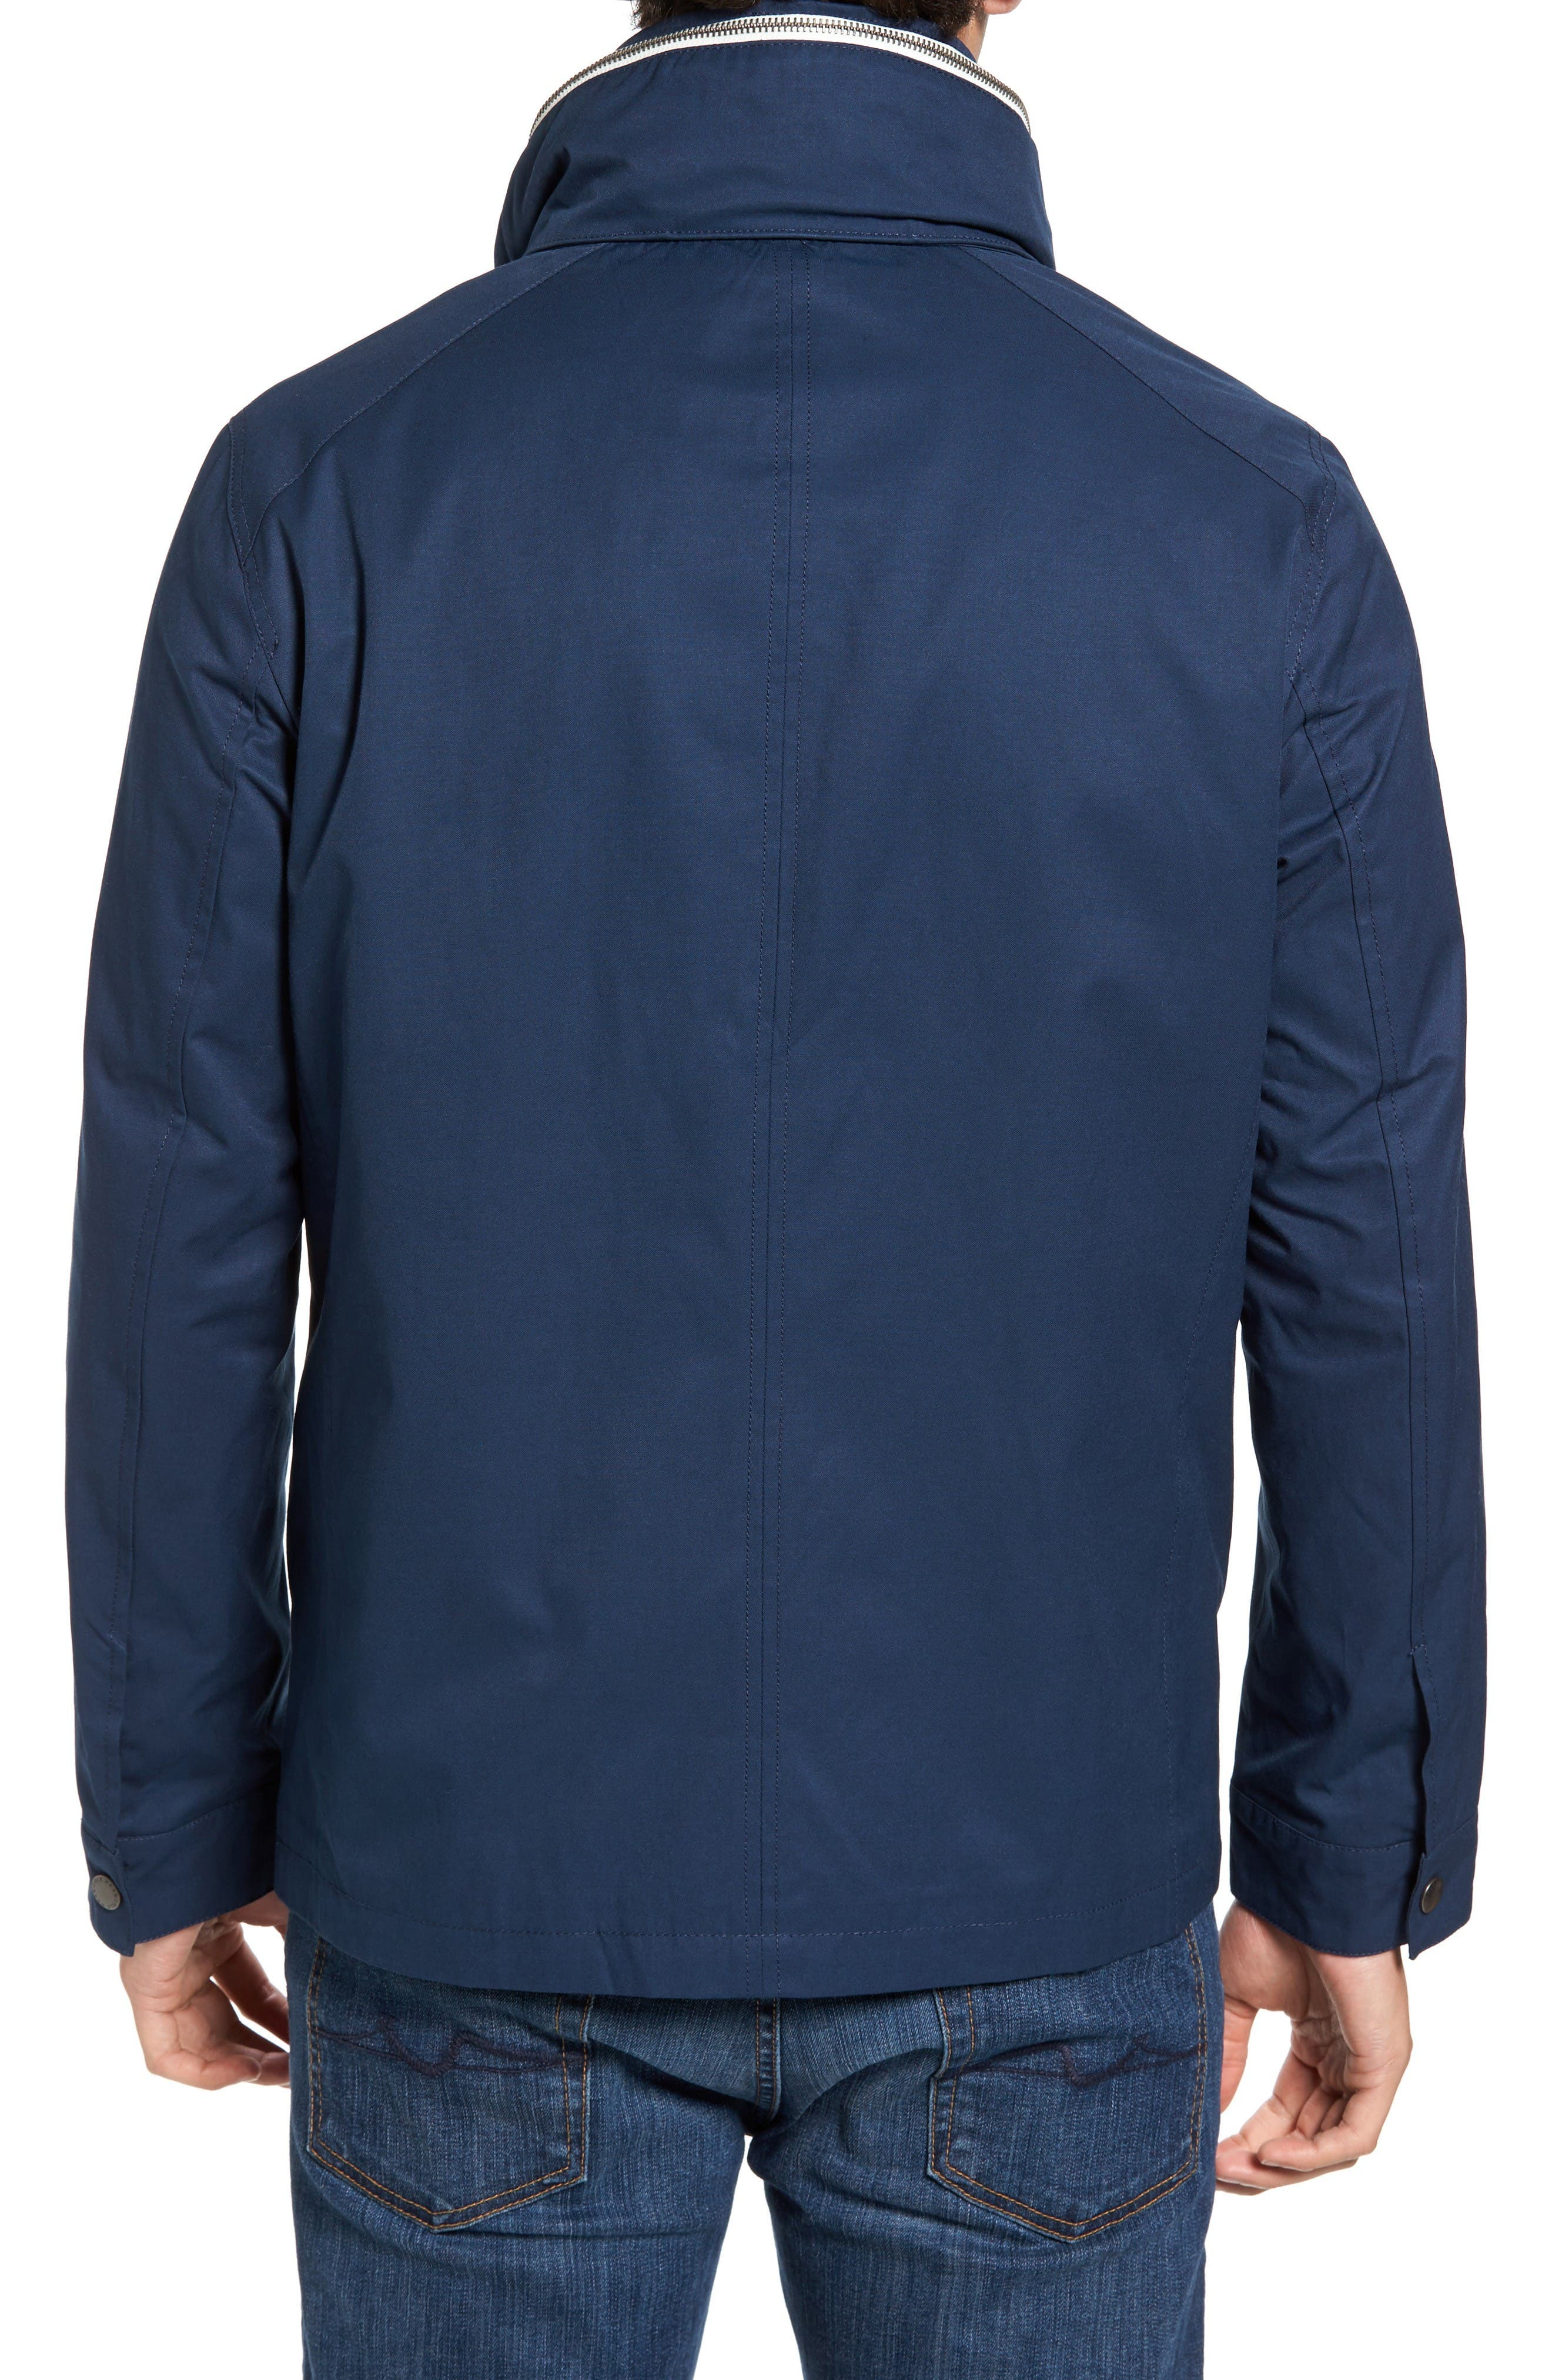 Military Oxford Jacket,                             Alternate thumbnail 2, color,                             Indigo